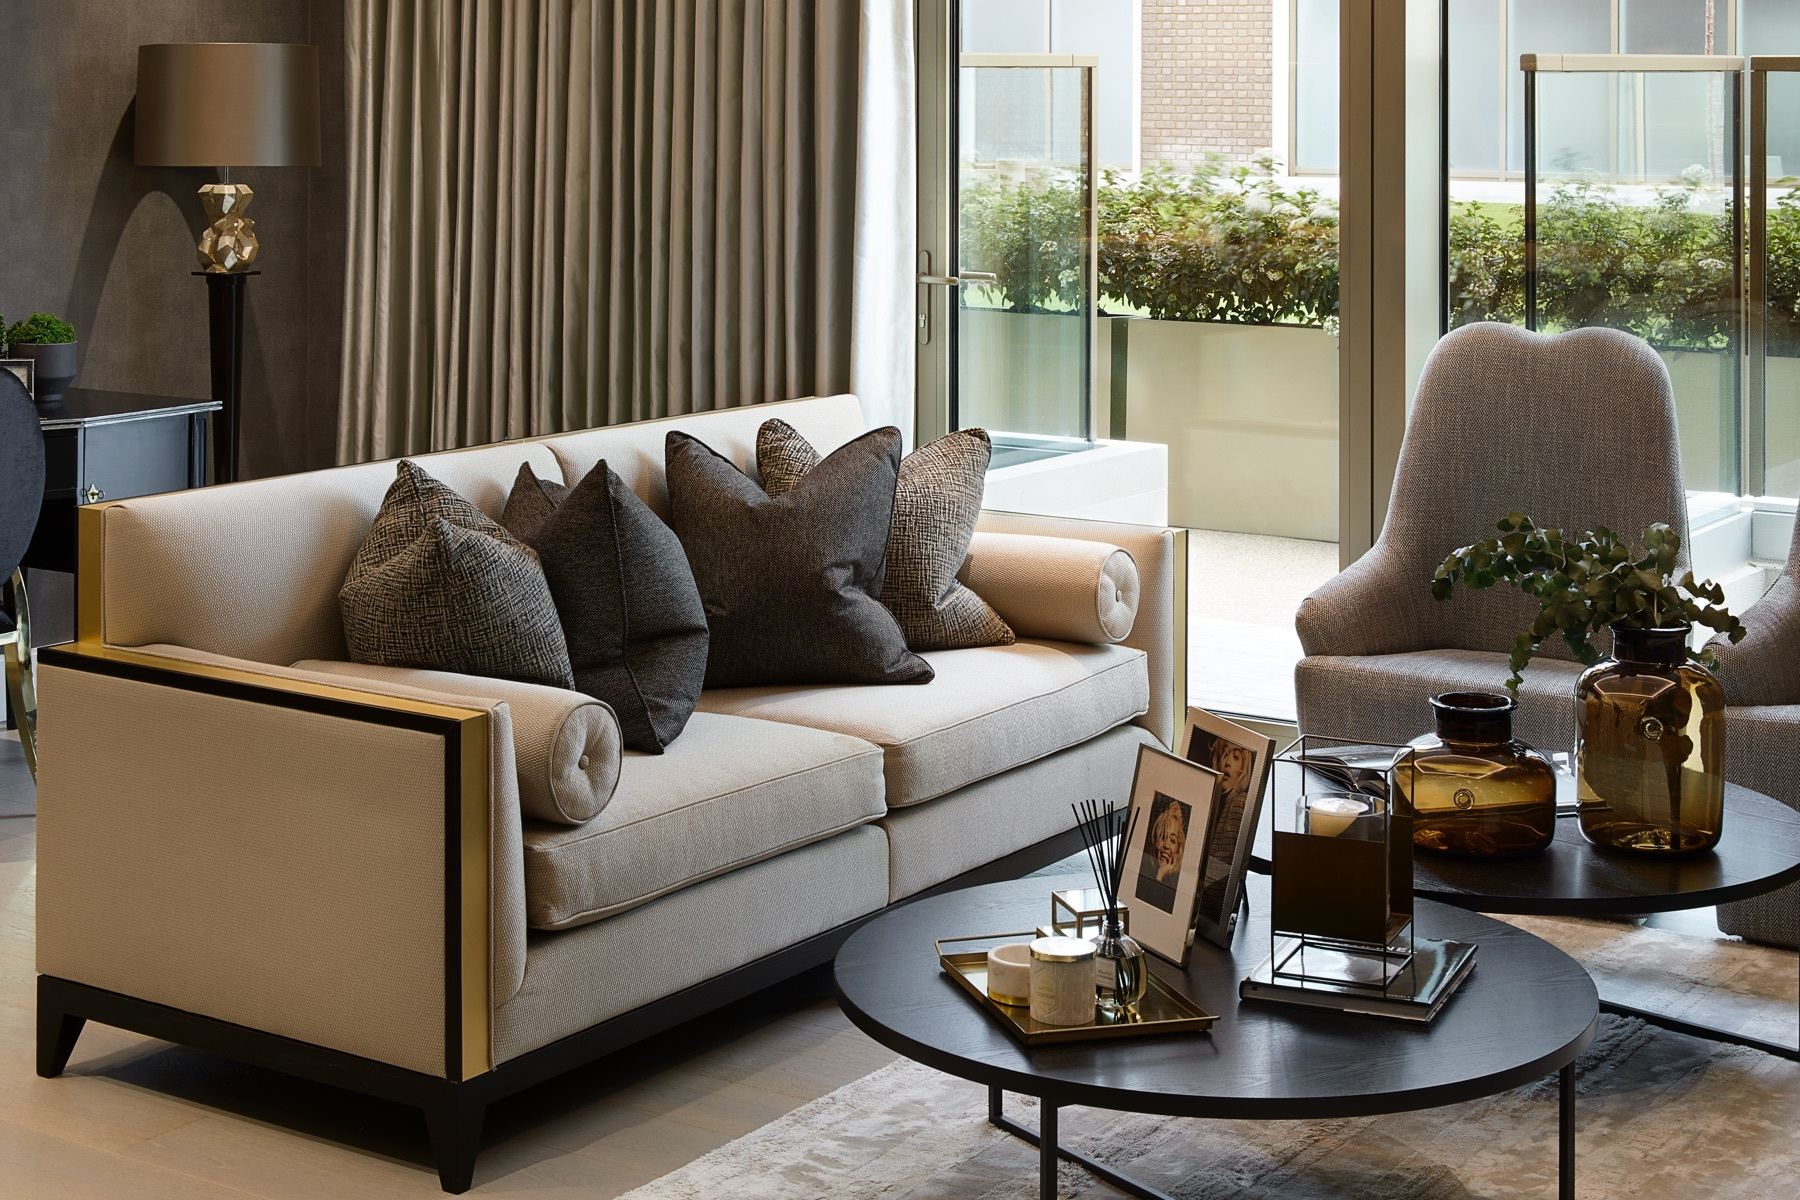 Luxury Interior Design Kensington 9